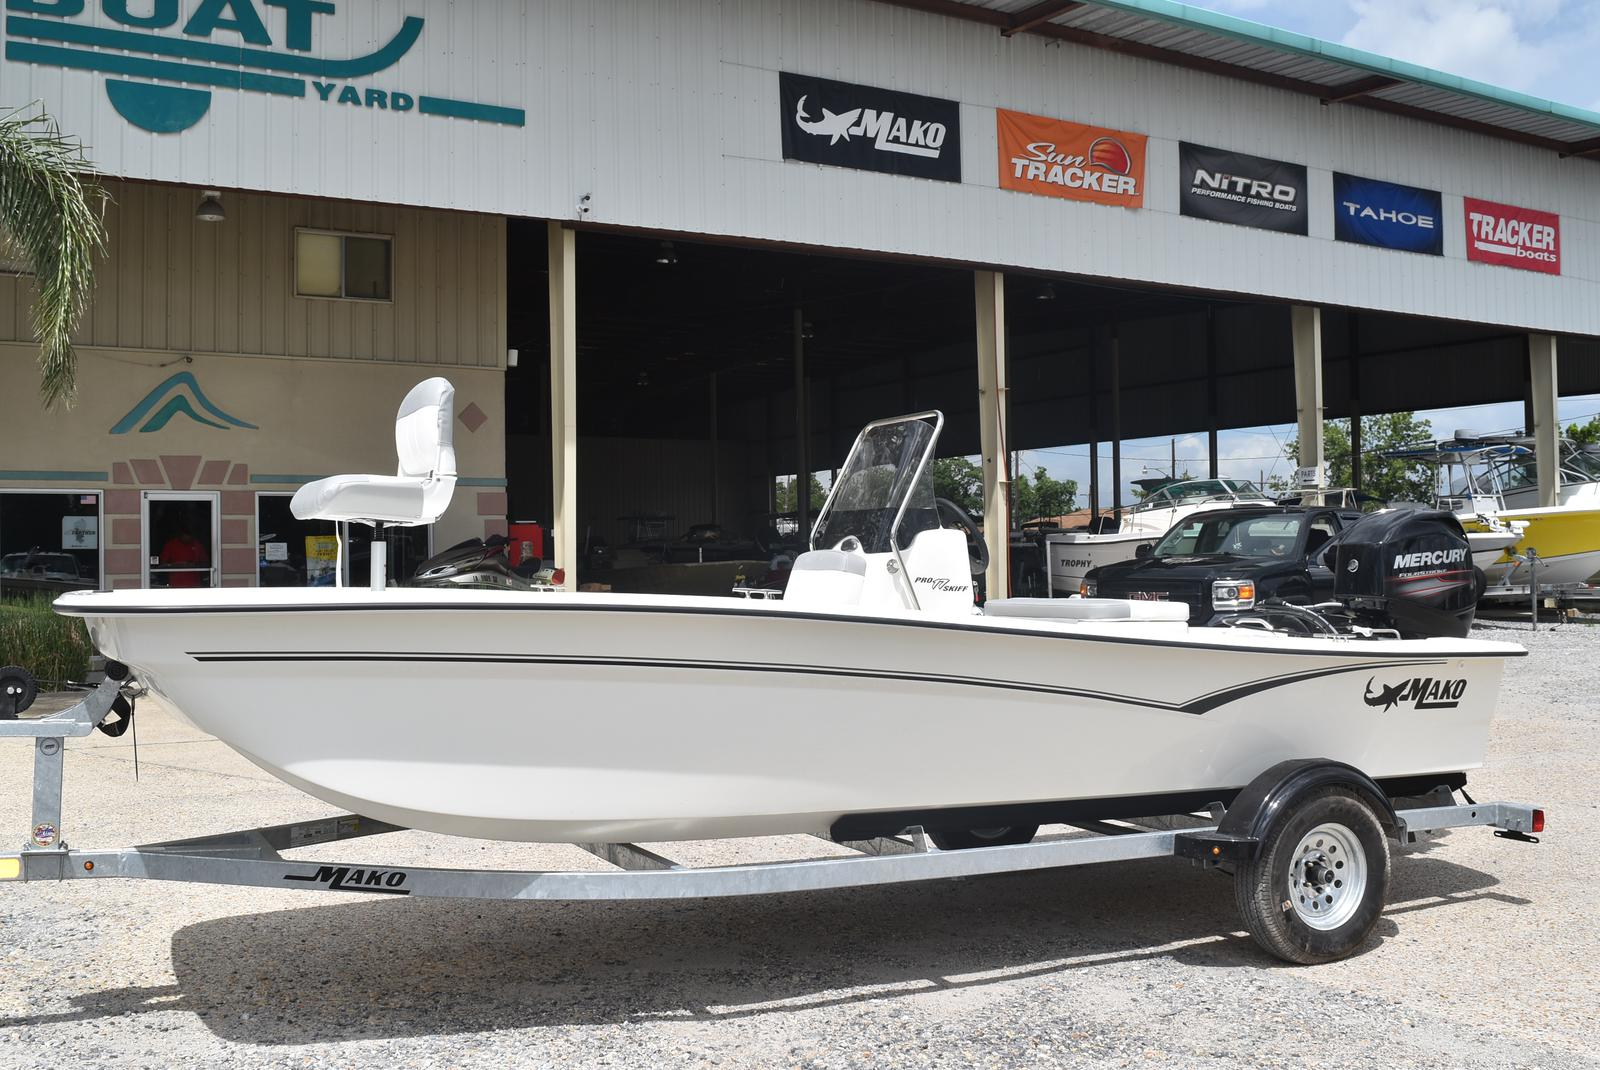 2020 Mako boat for sale, model of the boat is Pro Skiff 17, 75 ELPT & Image # 85 of 702